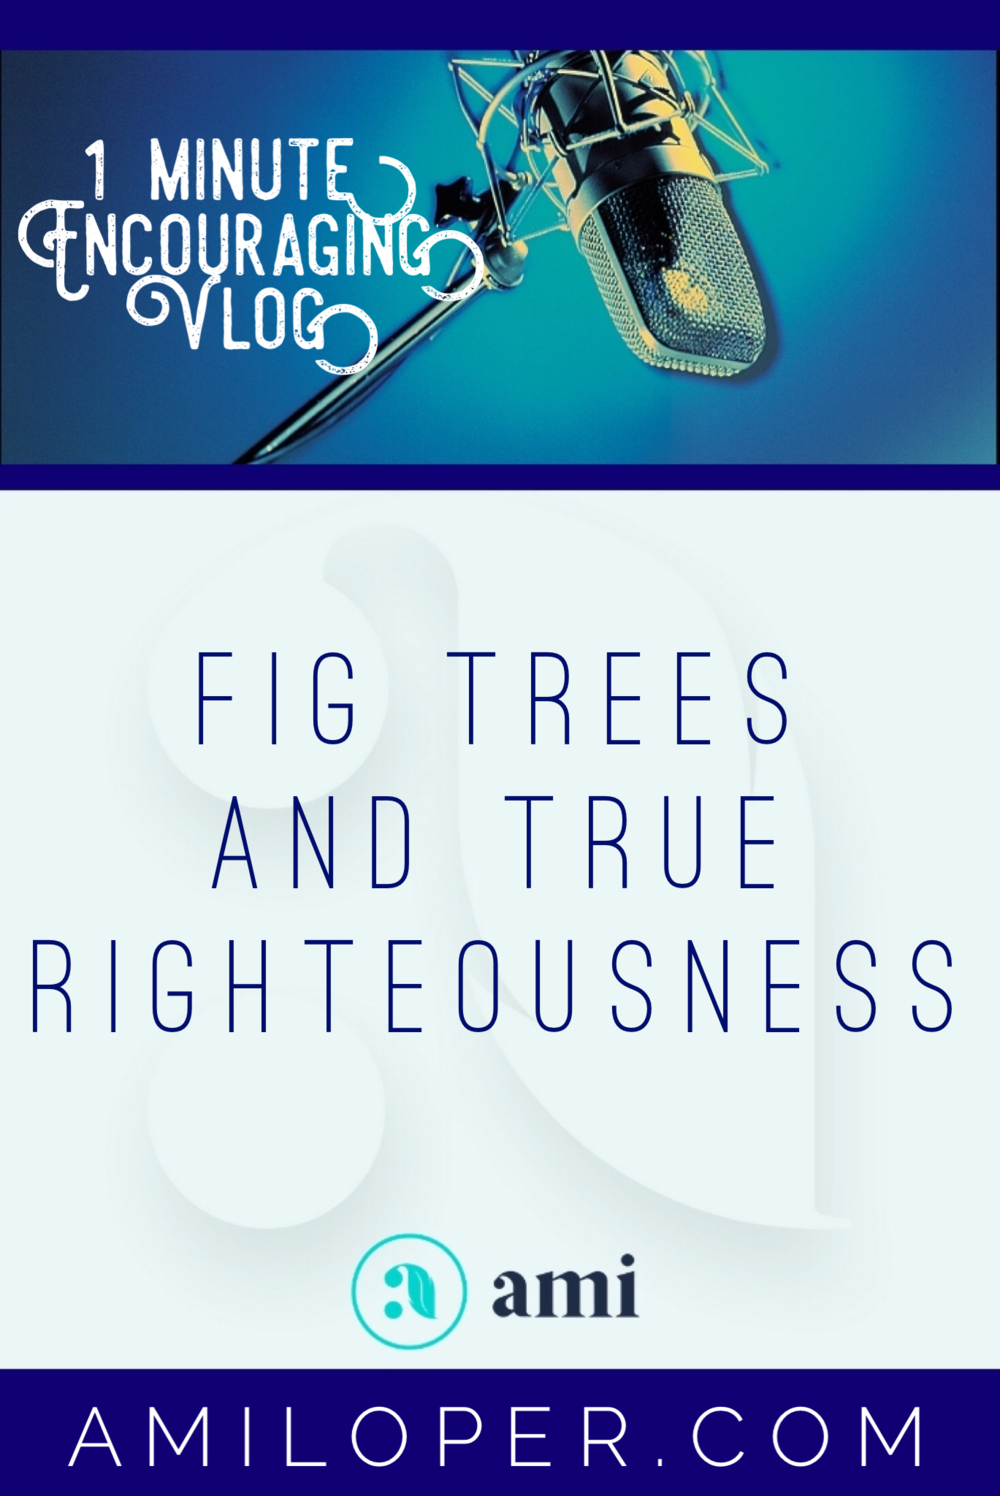 Are we trying to bear fruit on our own? Perhaps we have all the appearance of fruitfulness, but unless all the good things we are doing are birthed out of a place of true righteousness (righteousness received as a gift from God), all our effort is the fruitless action of self-righteousness. #SelfImprovement #BibleStudy #vlog